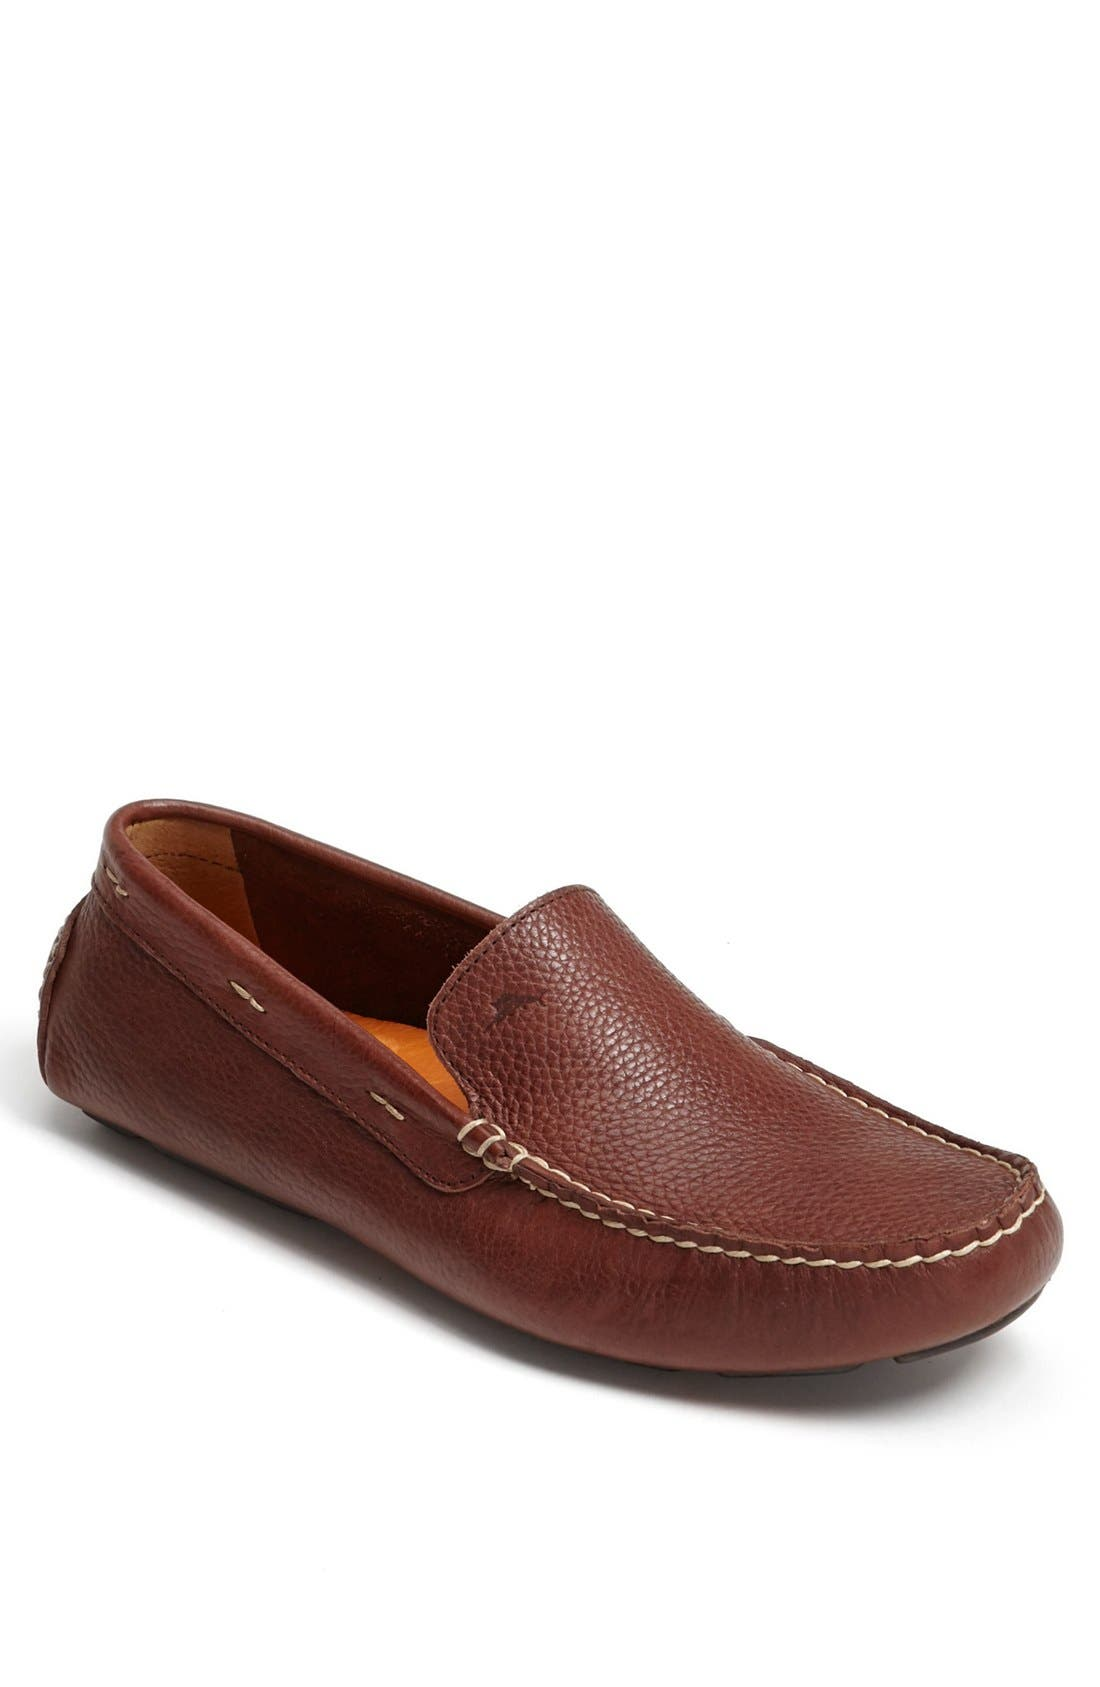 Main Image - Tommy Bahama 'Pagota' Driving Shoe